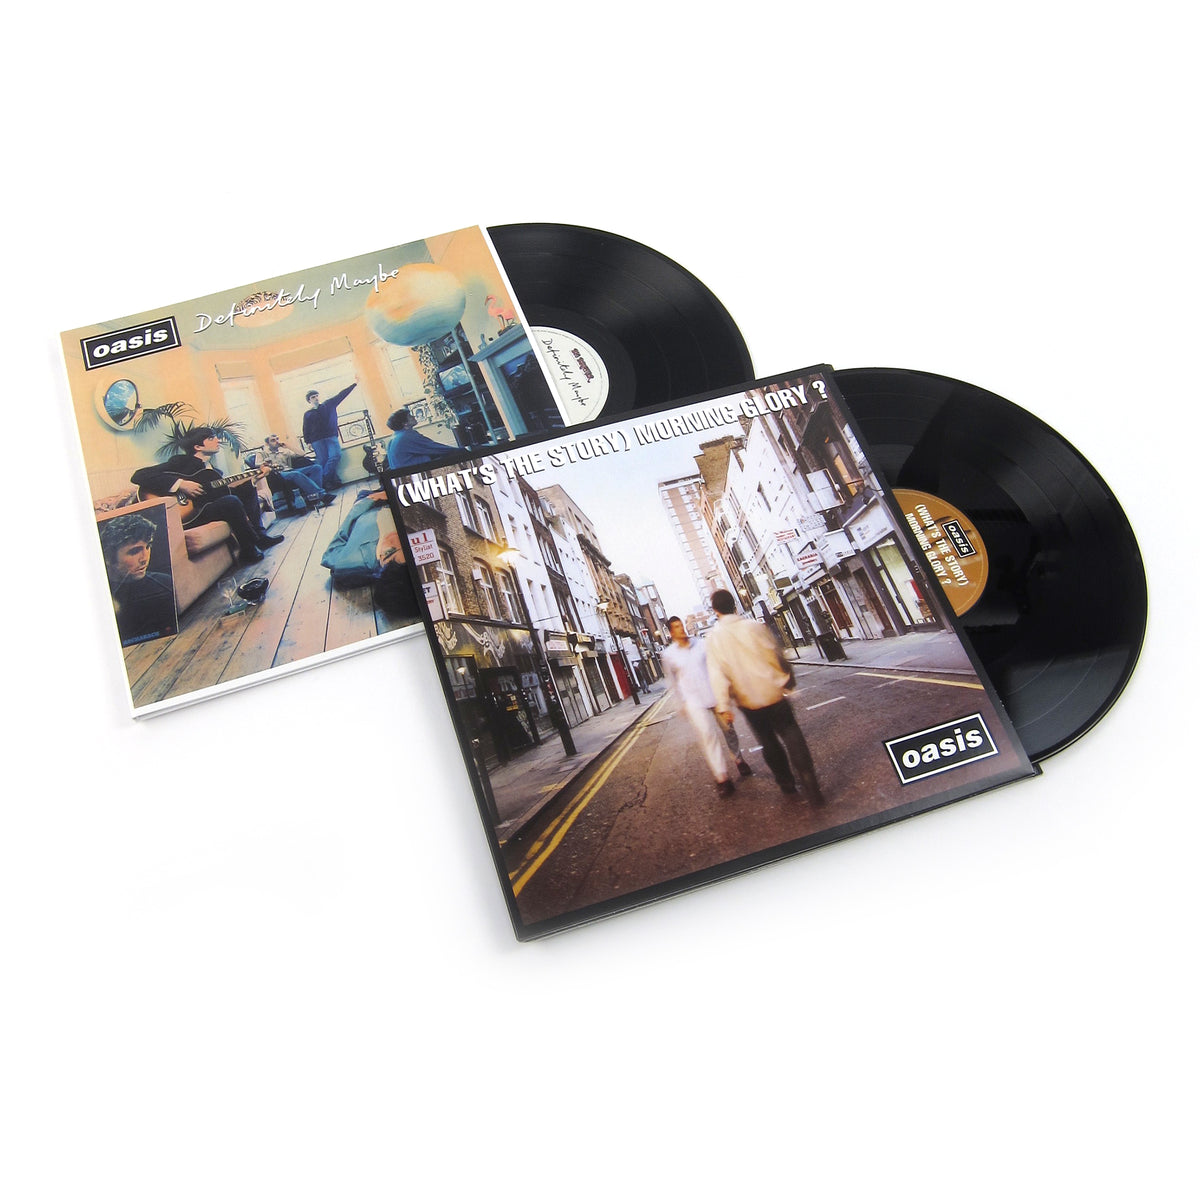 Oasis: Vinyl LP Album Pack (Definitely Maybe, What's The Story Morning Glory?)